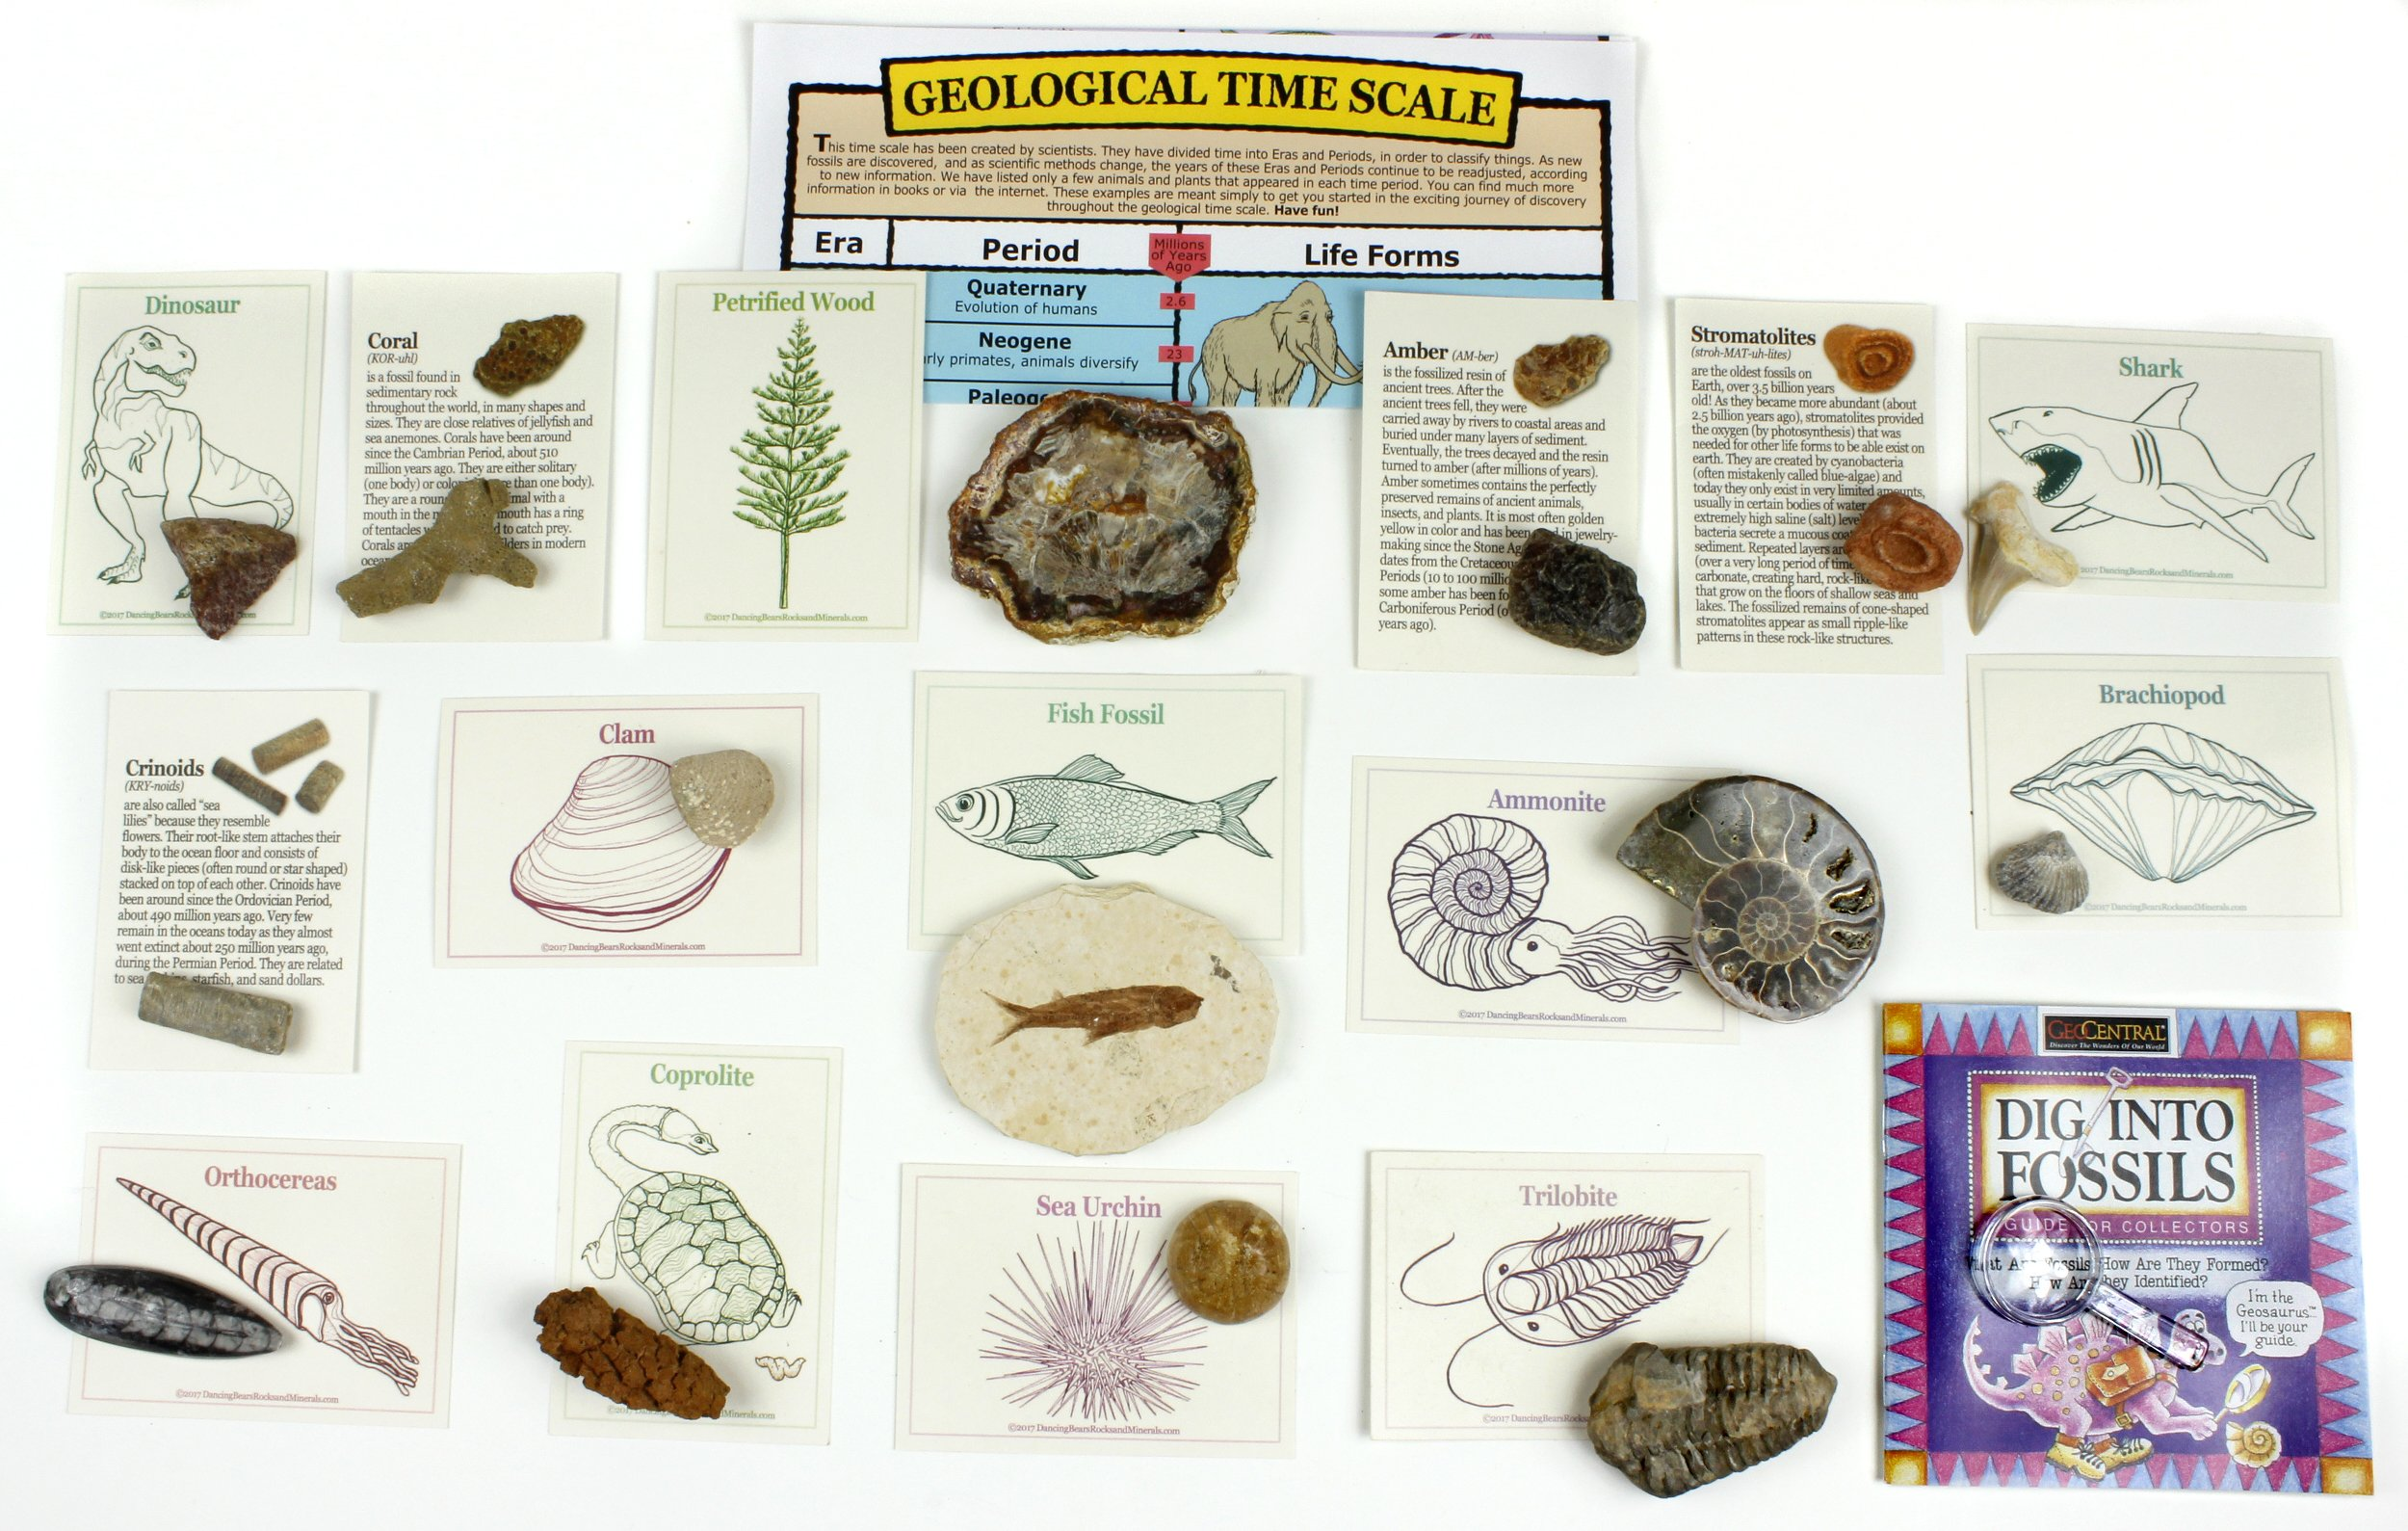 Dancing Bear Fossil Collection Set, 15 Real Specimens: Trilobite, Ammonite, Fish Fossil, Shark Tooth, Petrified Wood, Dinosaur Bone, Fossil Book, Time Scale, ID Cards, Magnifying Glass, Science Kit by Dancing Bear (Image #2)